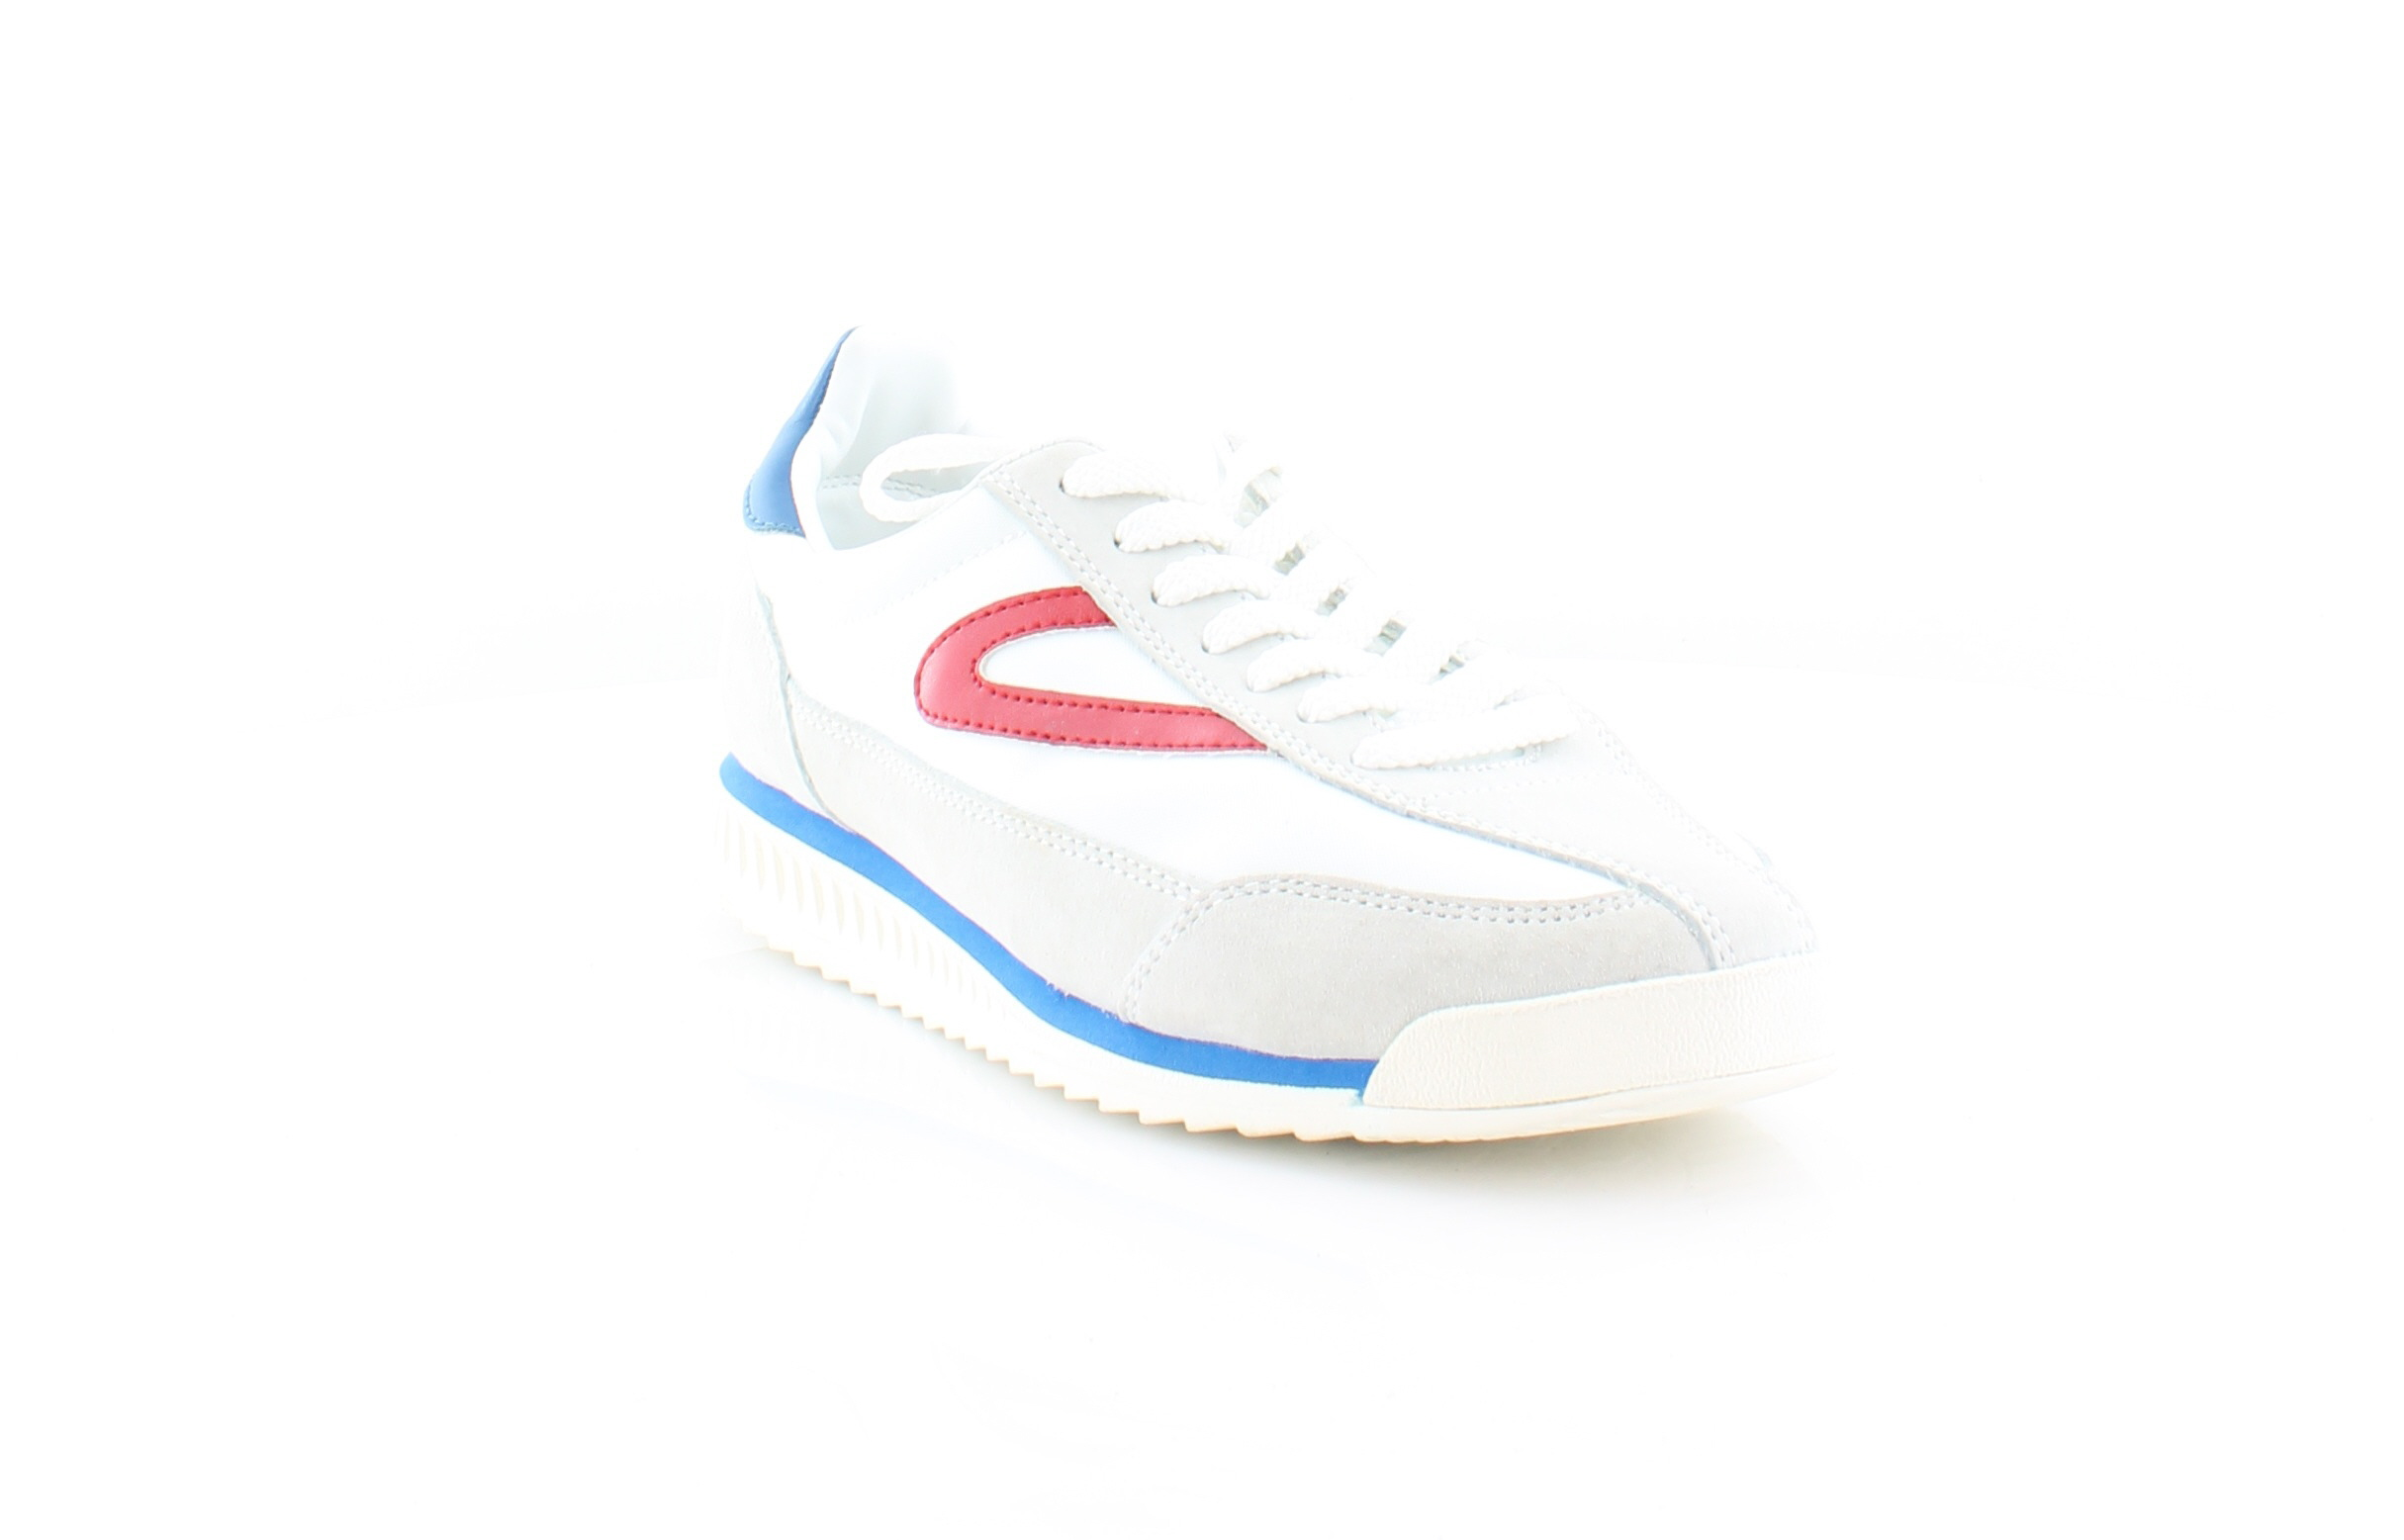 Tretorn Rawlins3 Women's Athletic Off White White Red Blue Size 5 M by